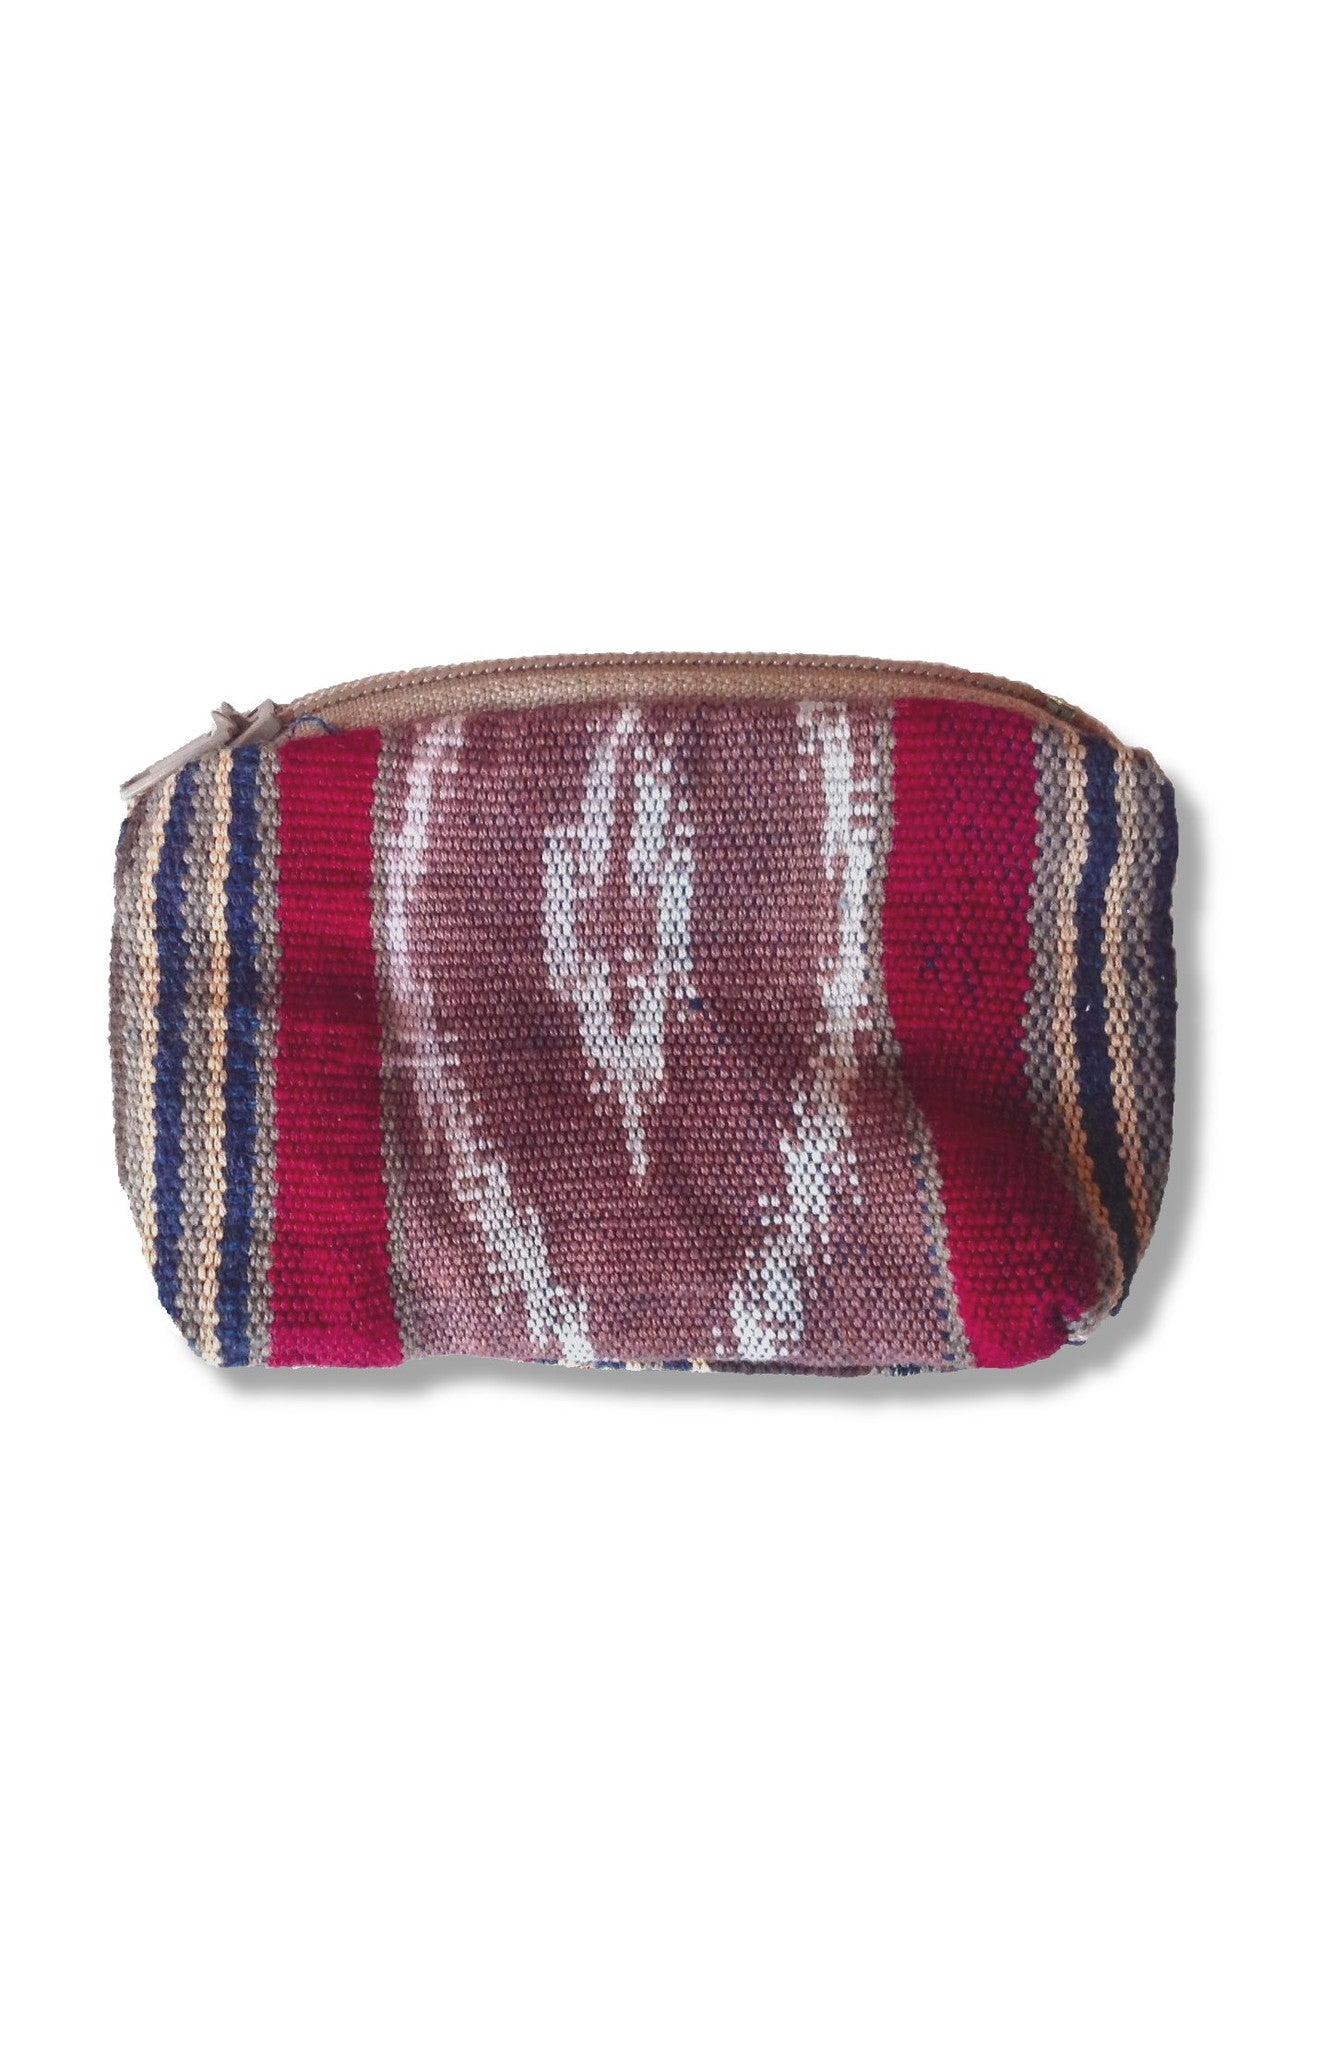 Backstrap loom woven coin purse with ikat flair in center panel. Tan, white, red and blue with ykk zipper. Guatemalan textile. Front side.